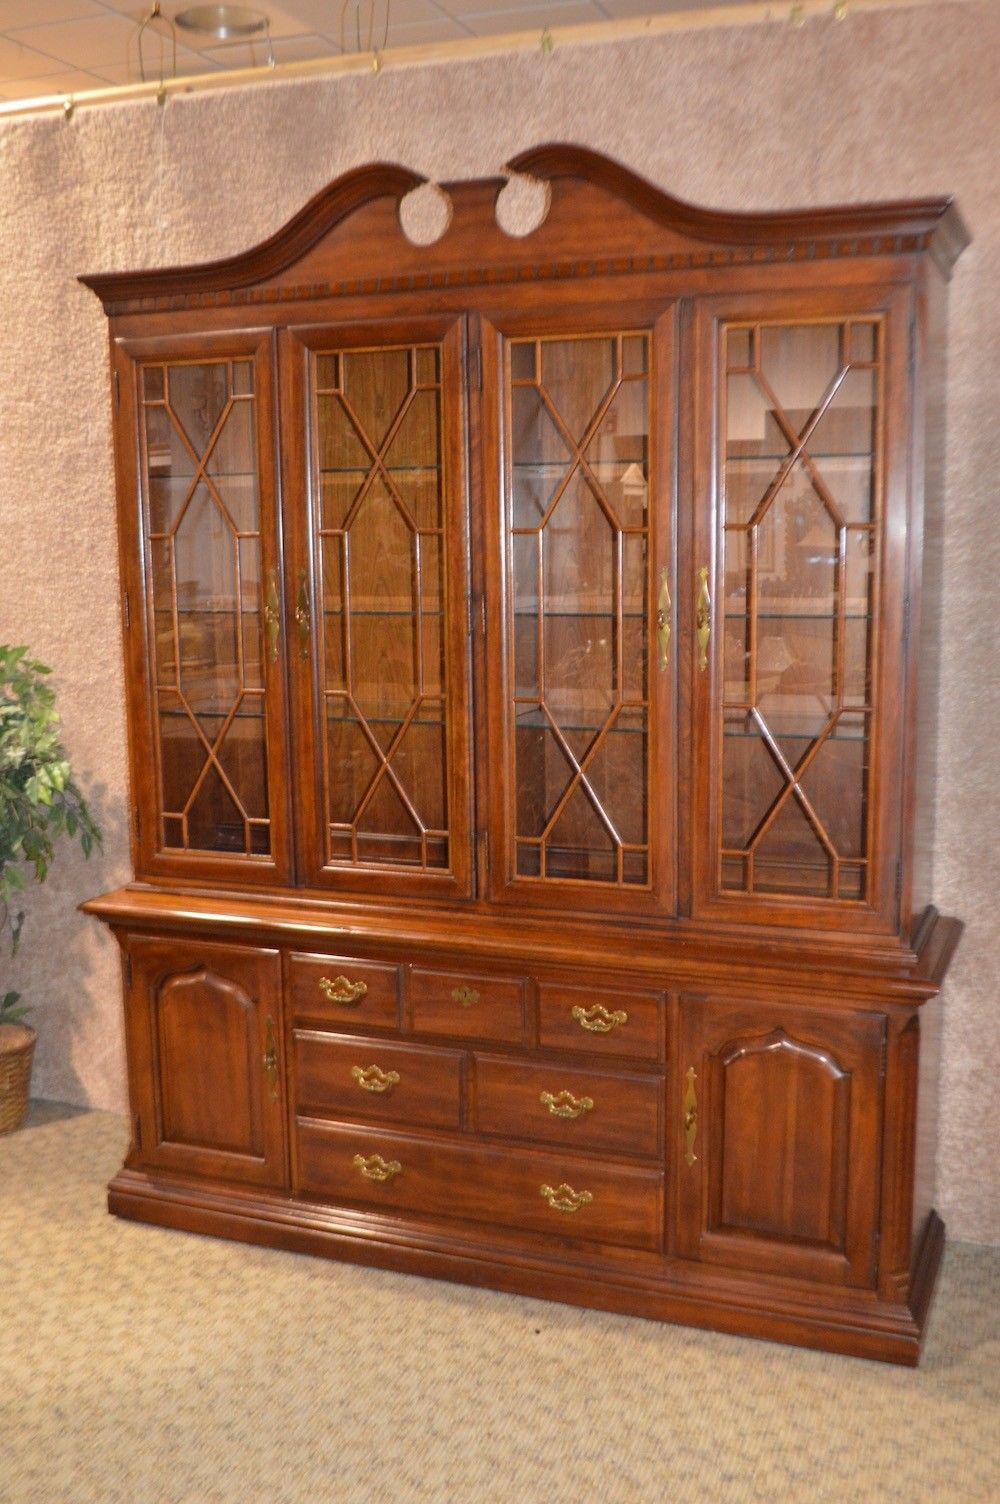 Chippendale Large Thomasville Traditional Style China Cabinet   2 Pc. For  Sale   Image 3